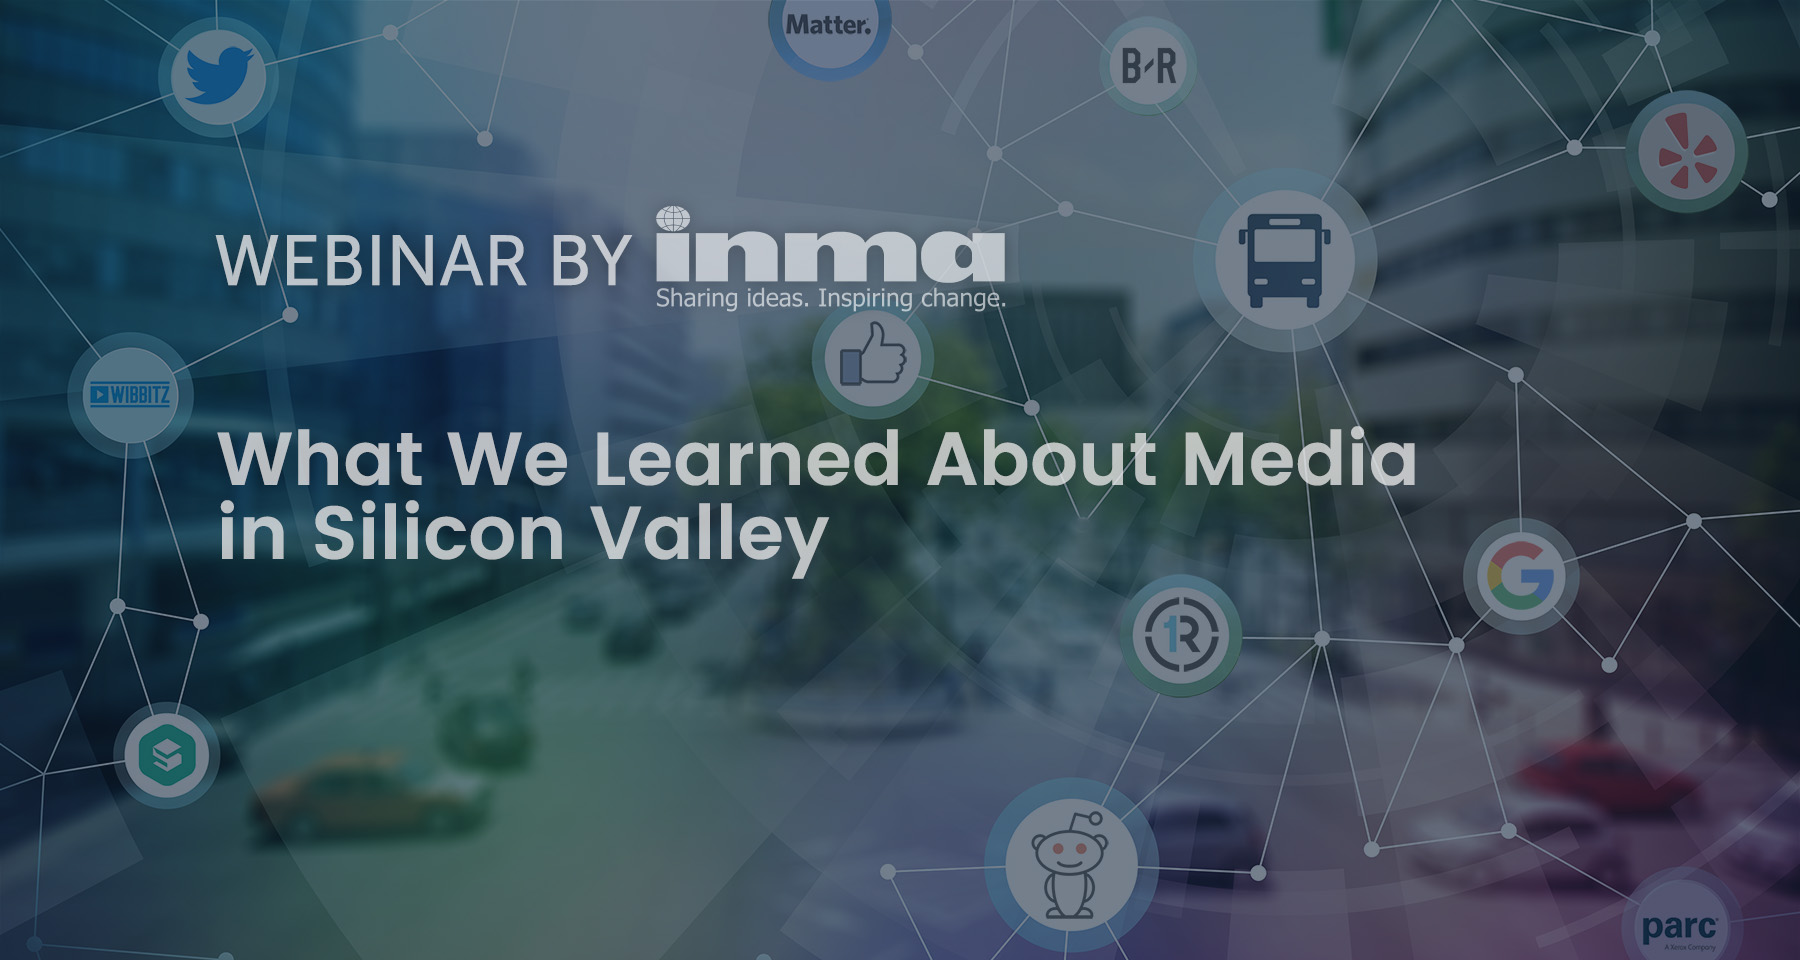 What we learned about media in Silicon Valley